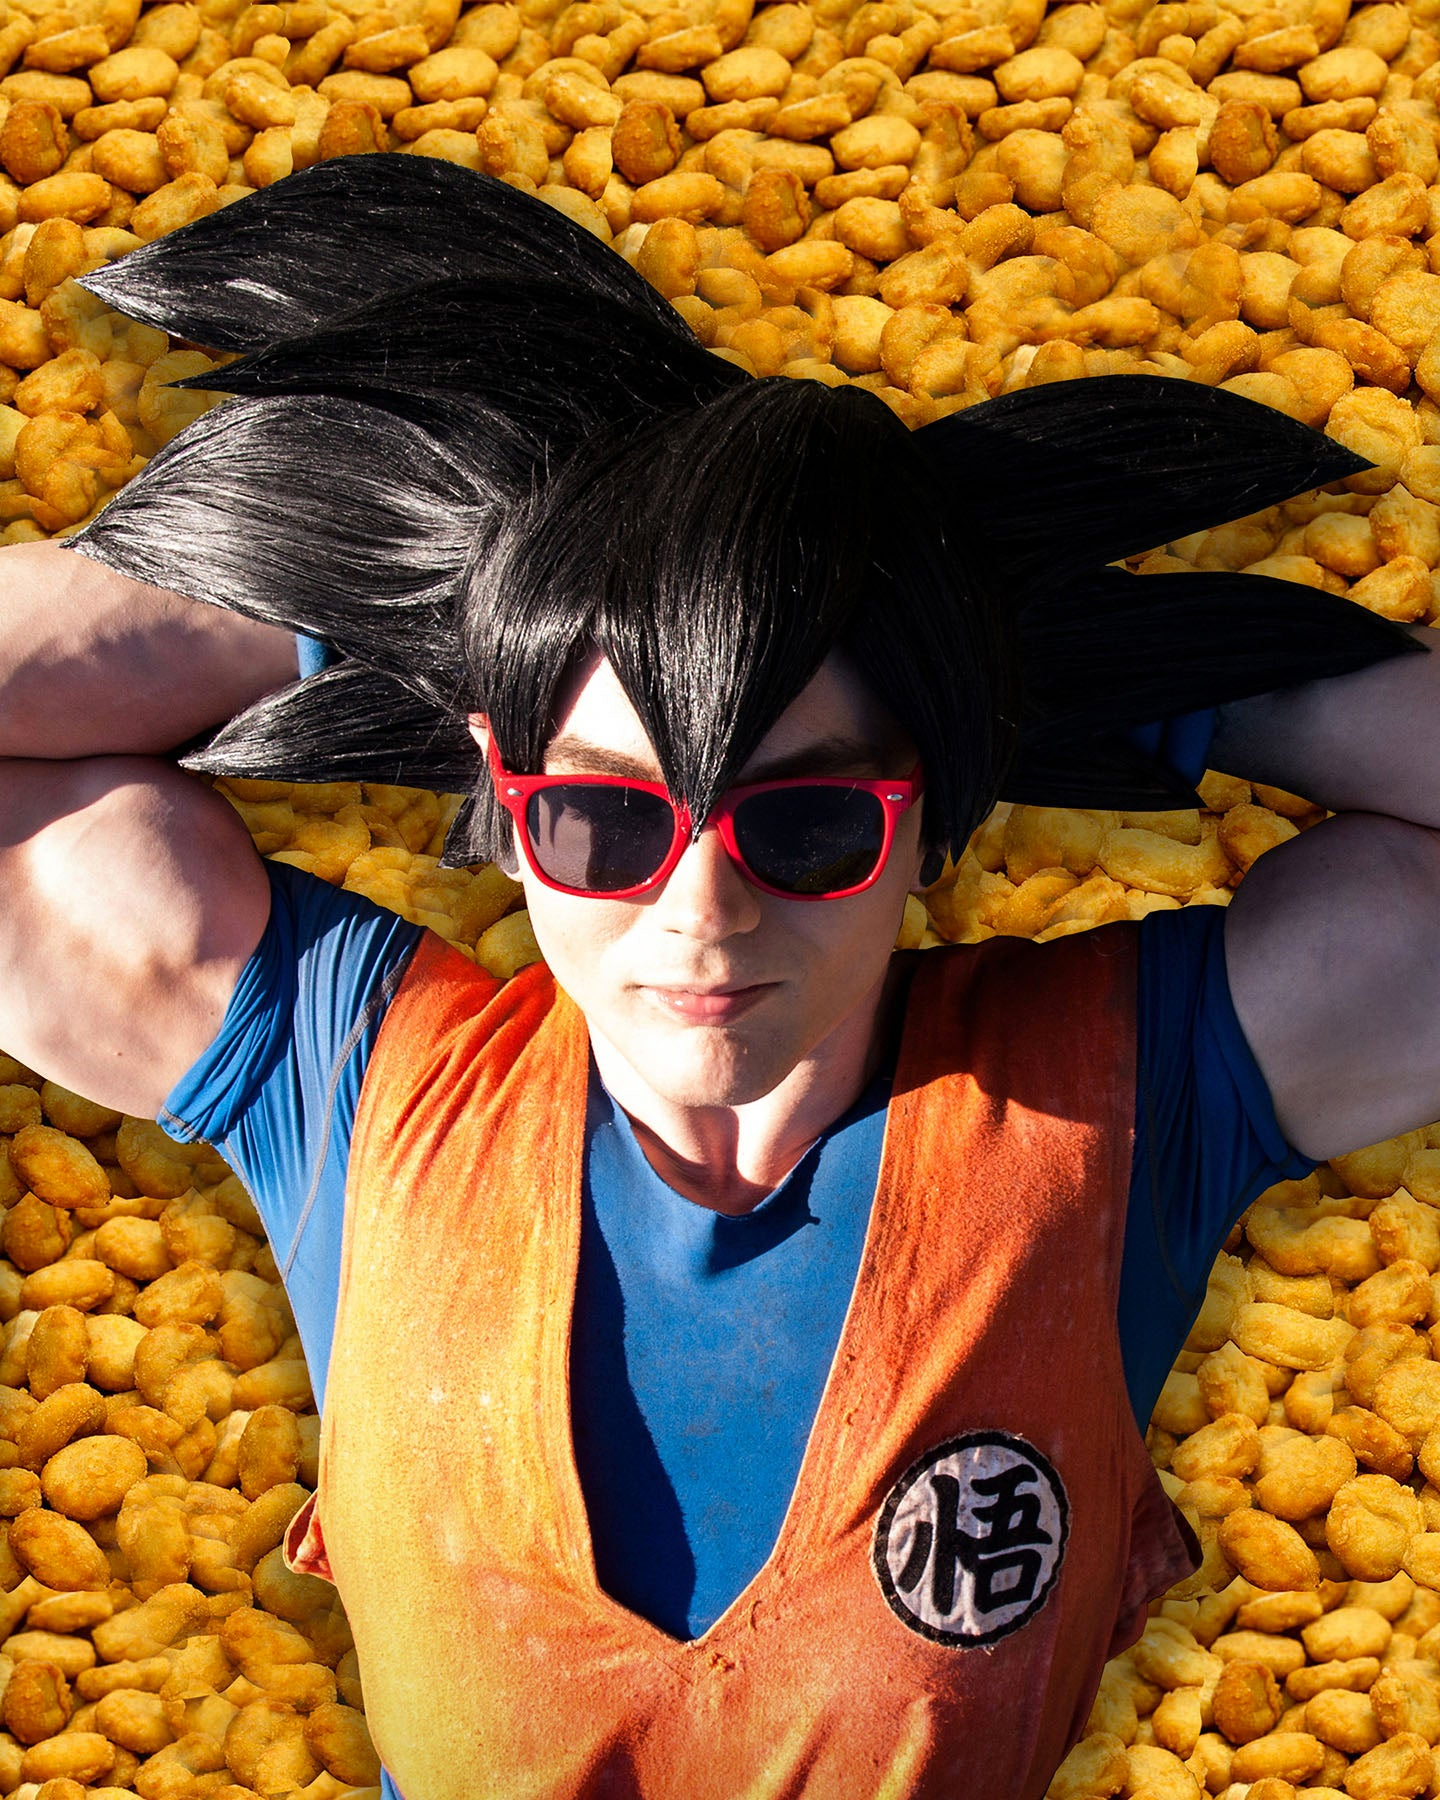 Goku Cosplay From DragonBall Sleeping On A Bed Of Chicken Nuggets